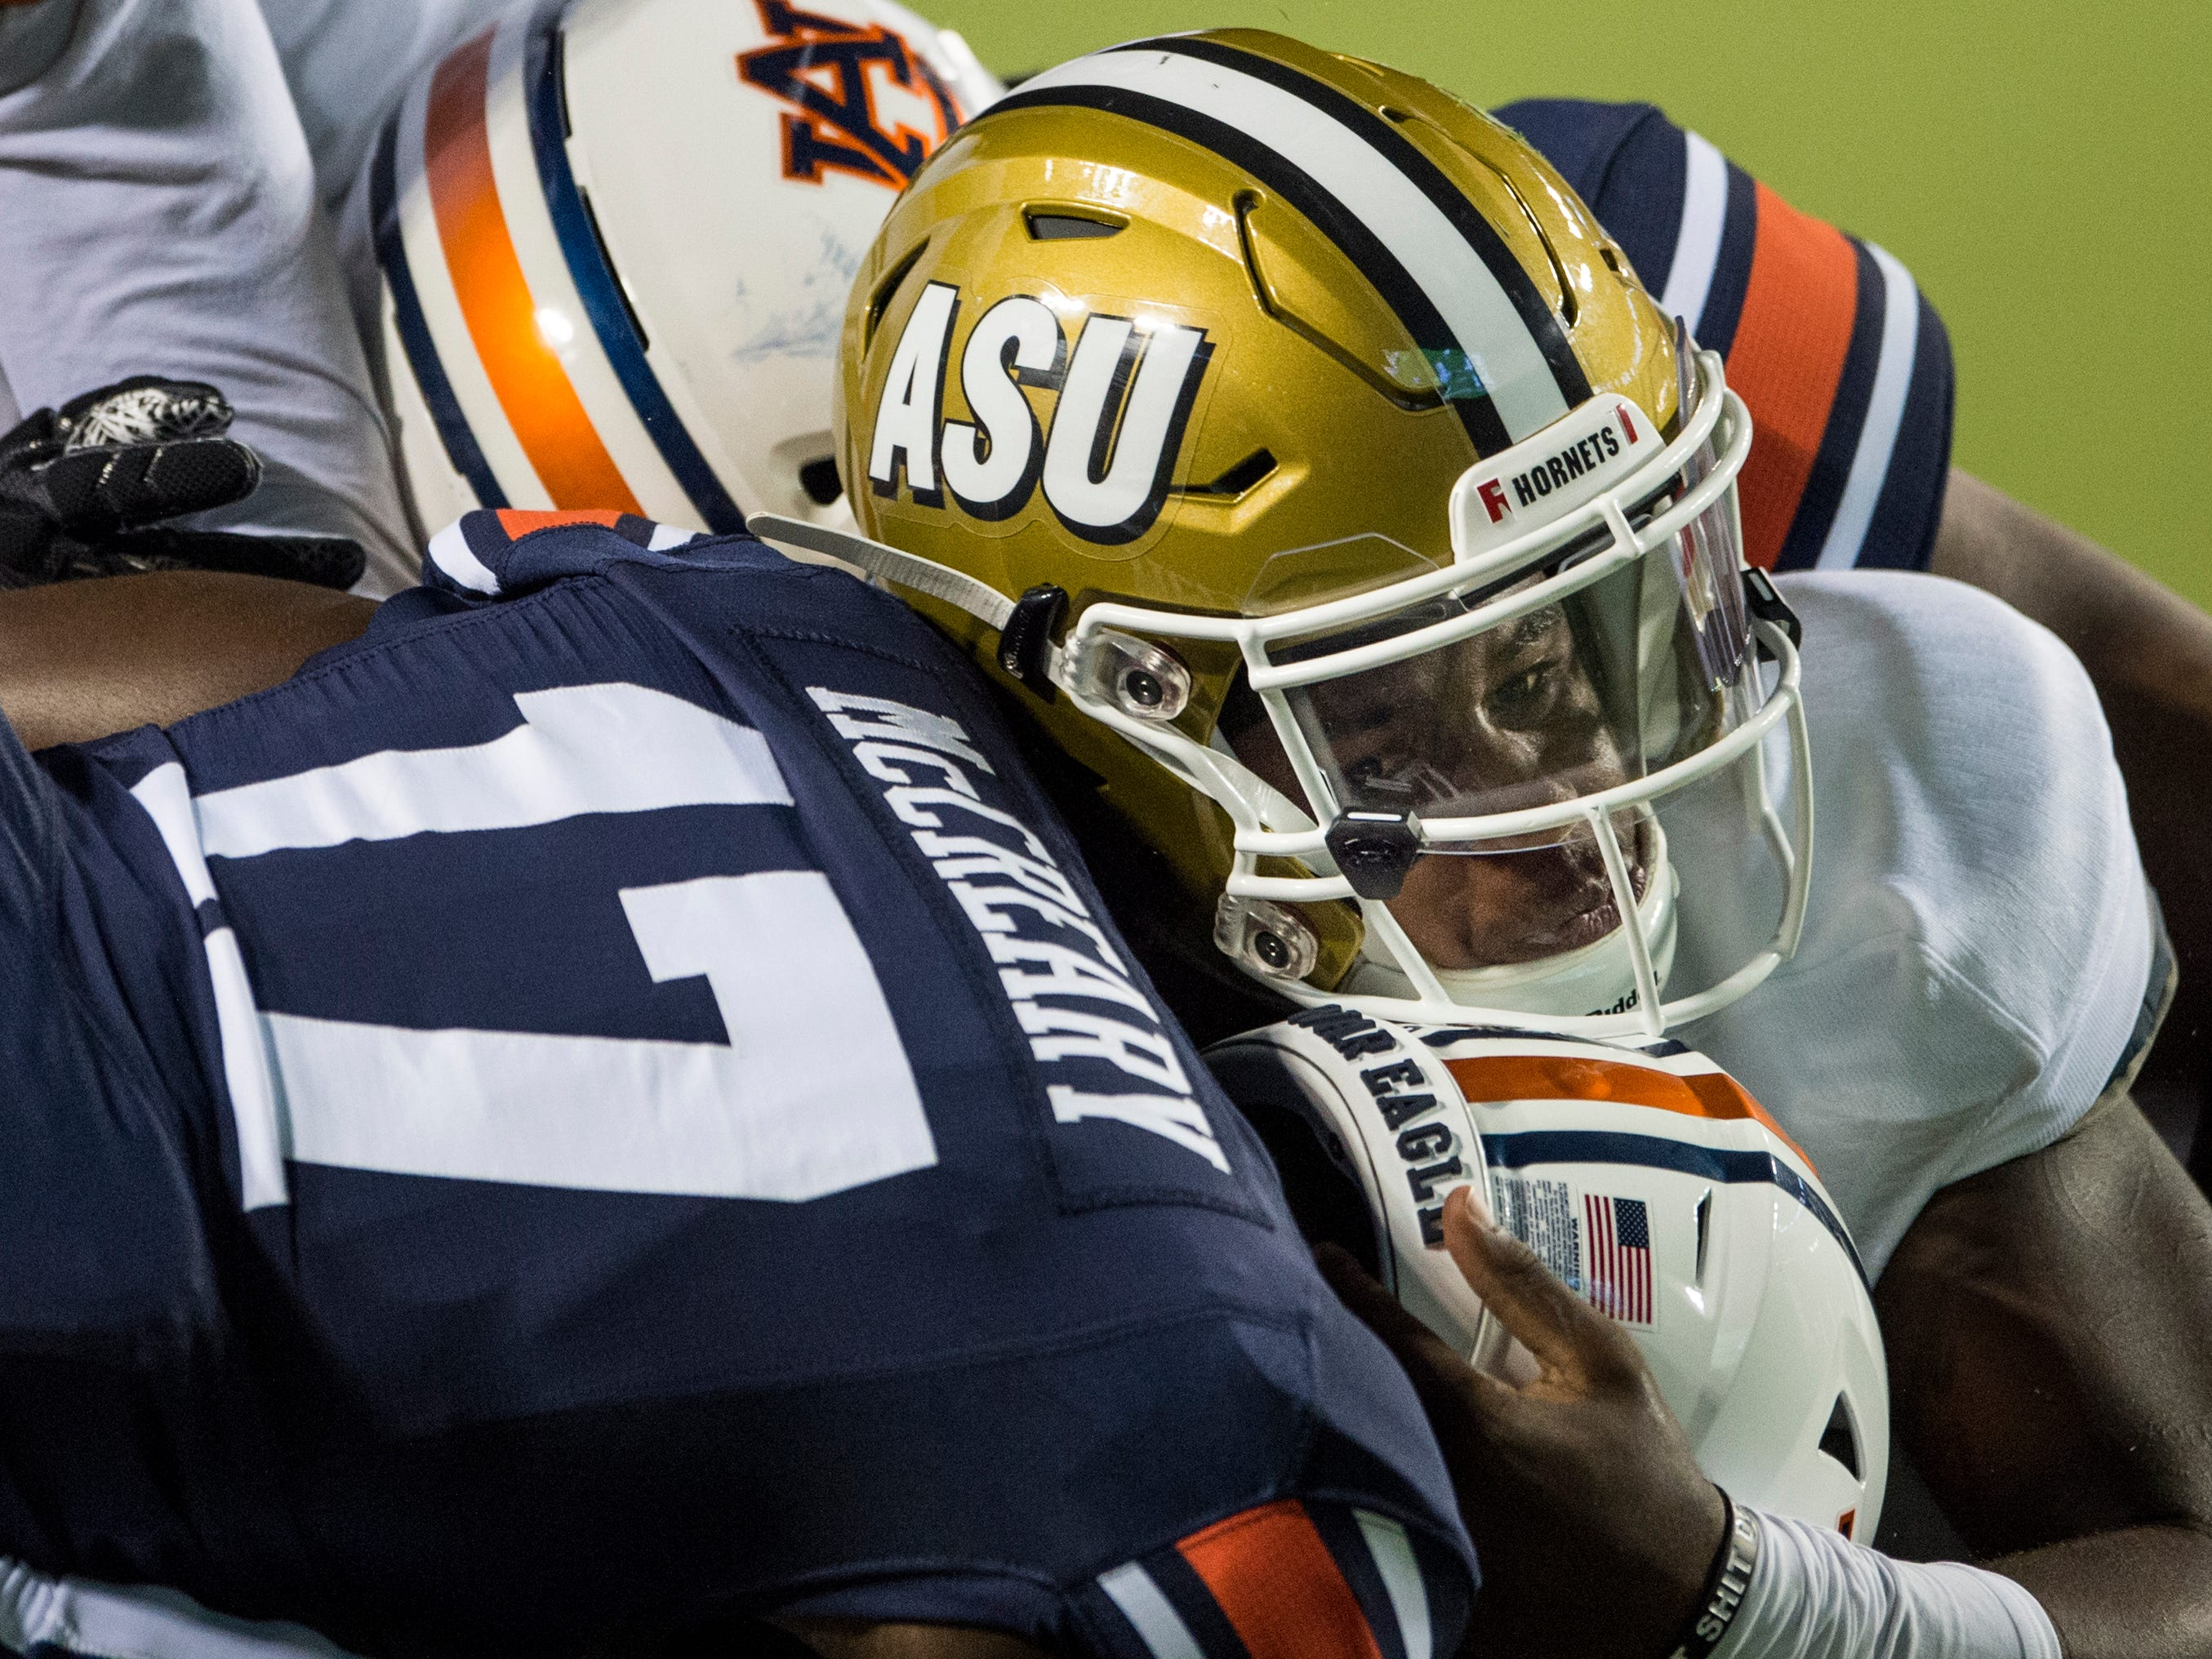 Alabama State's Palmer Graham (13) is sandwiched between Auburn's Roger McCreary (17) and Auburn's Tyrone Truesdell (94) at Jordan-Hare Stadium in Auburn, Ala., on Saturday, Sept. 8, 2018. Auburn defeated Alabama State 63-9.